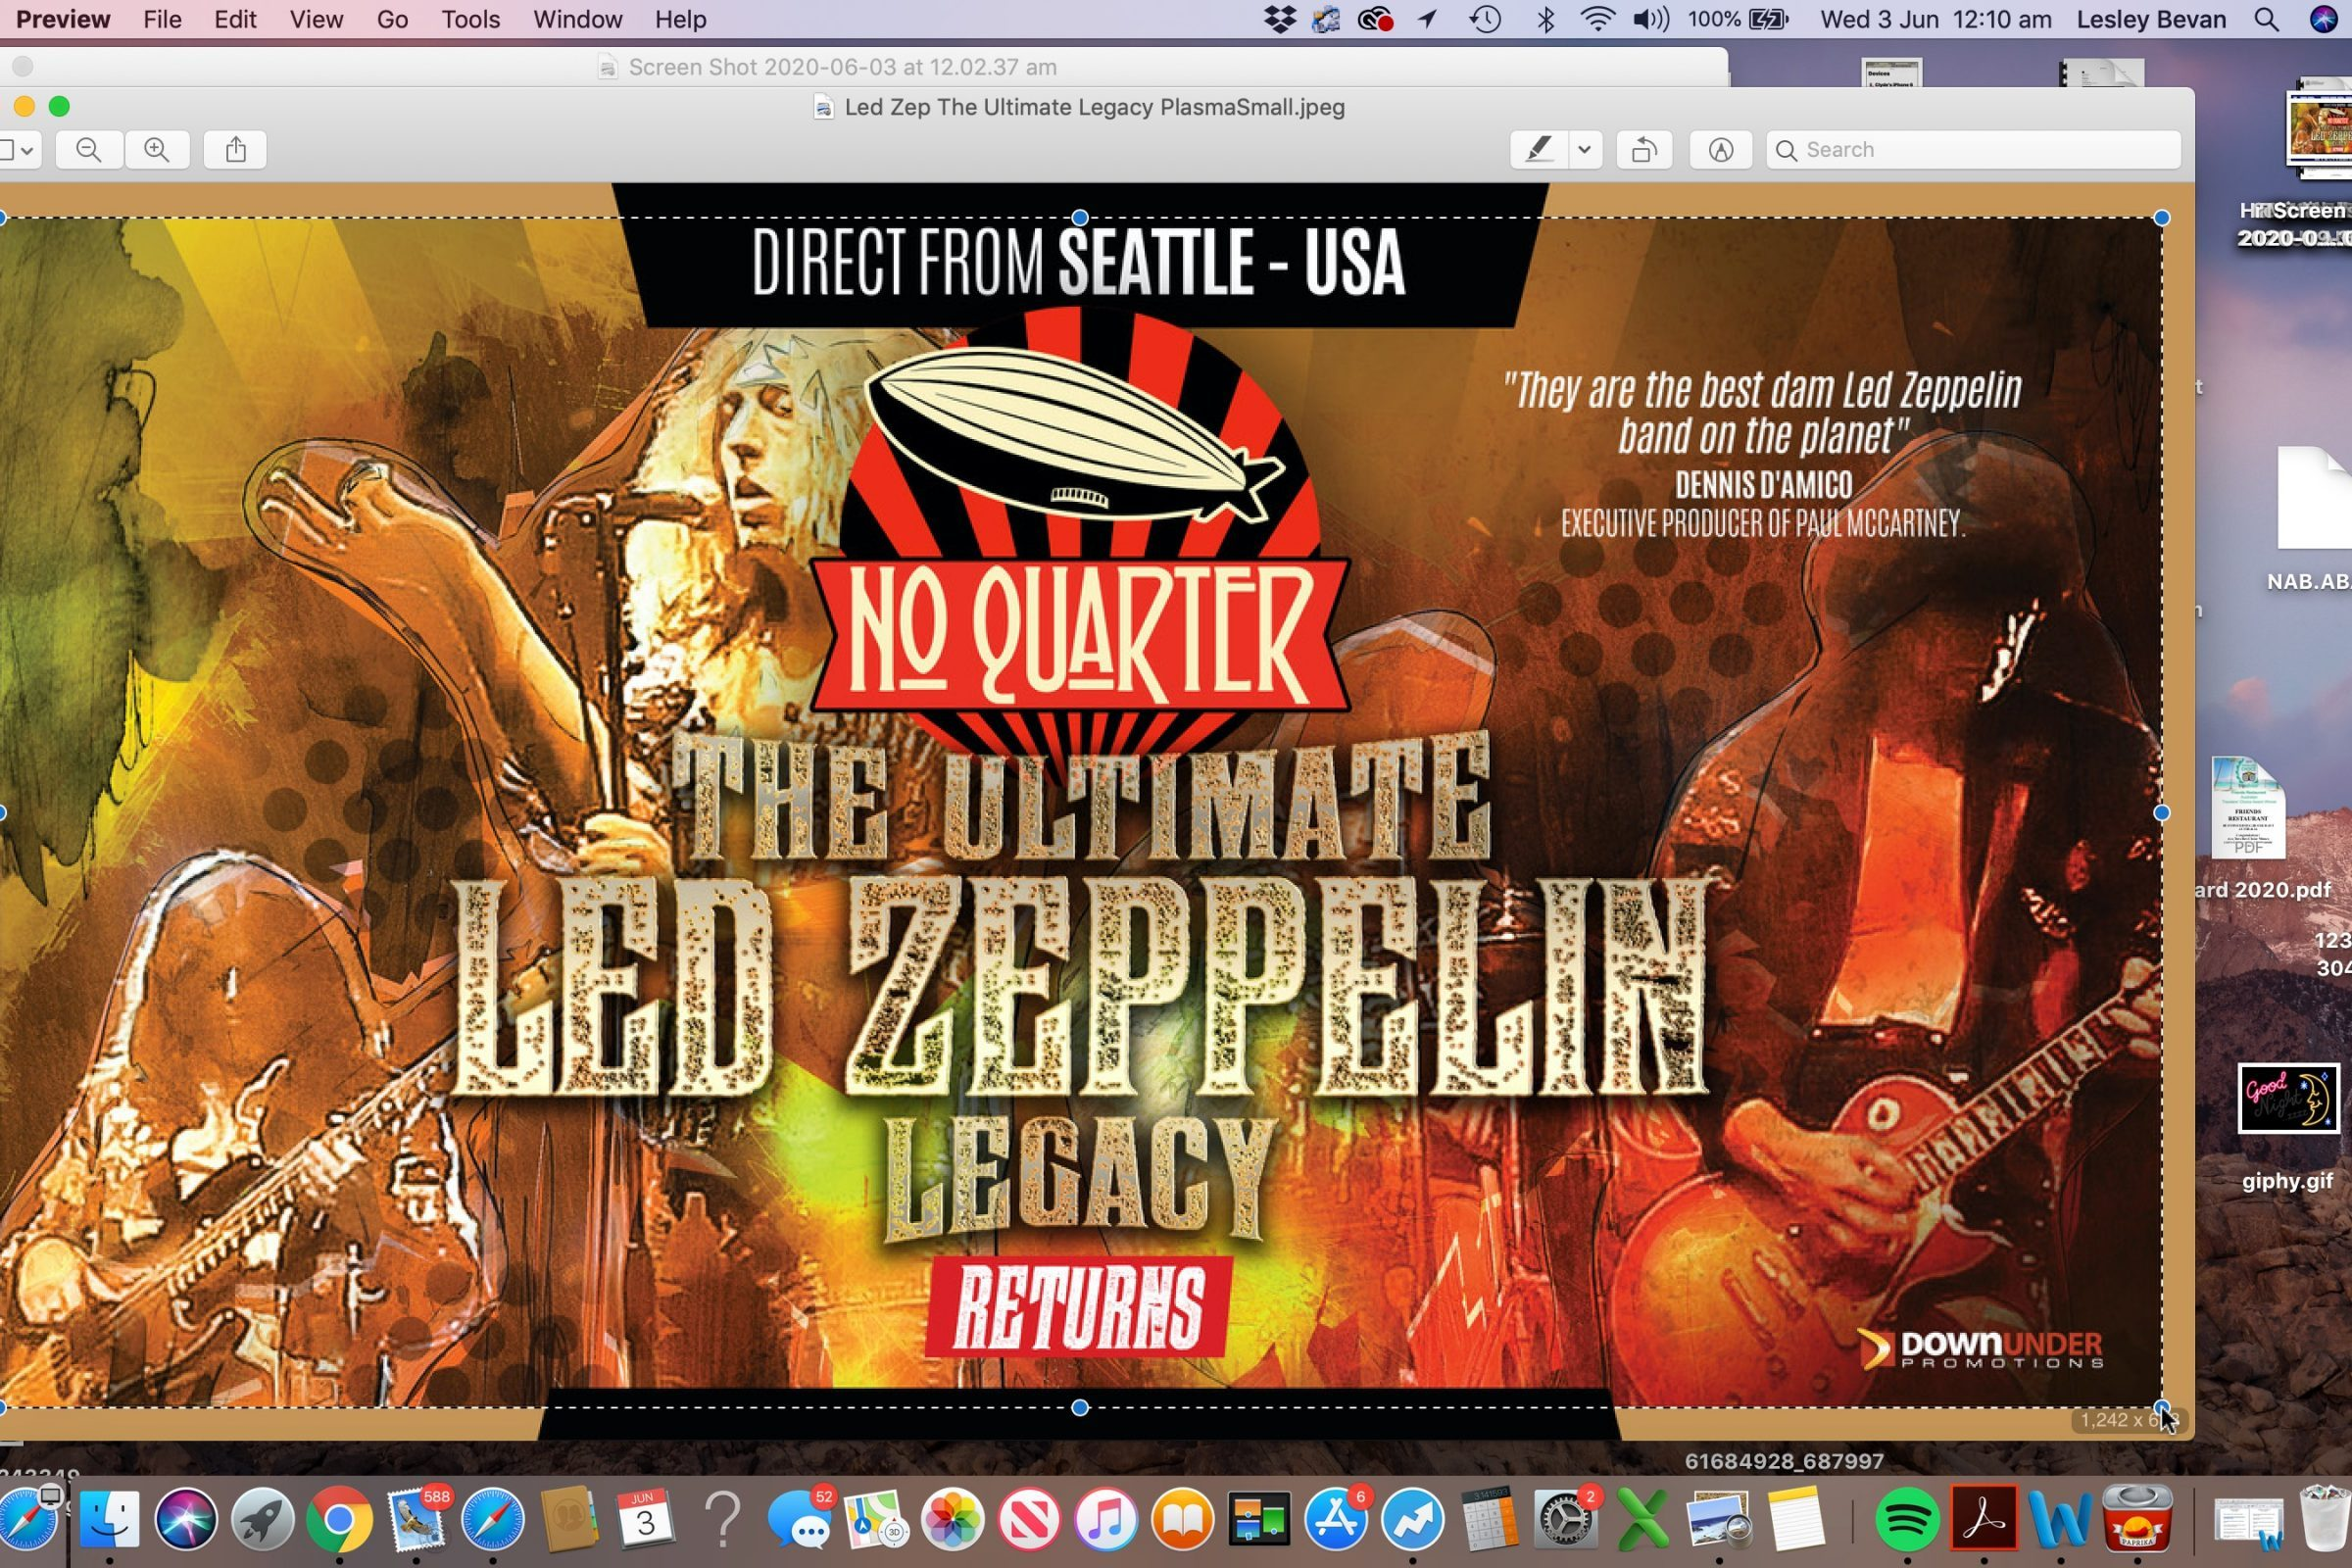 NO QUARTER, THE ULTIMATE LED ZEPPELIN LEGACY SHOW - DIRECT FROM THE USA